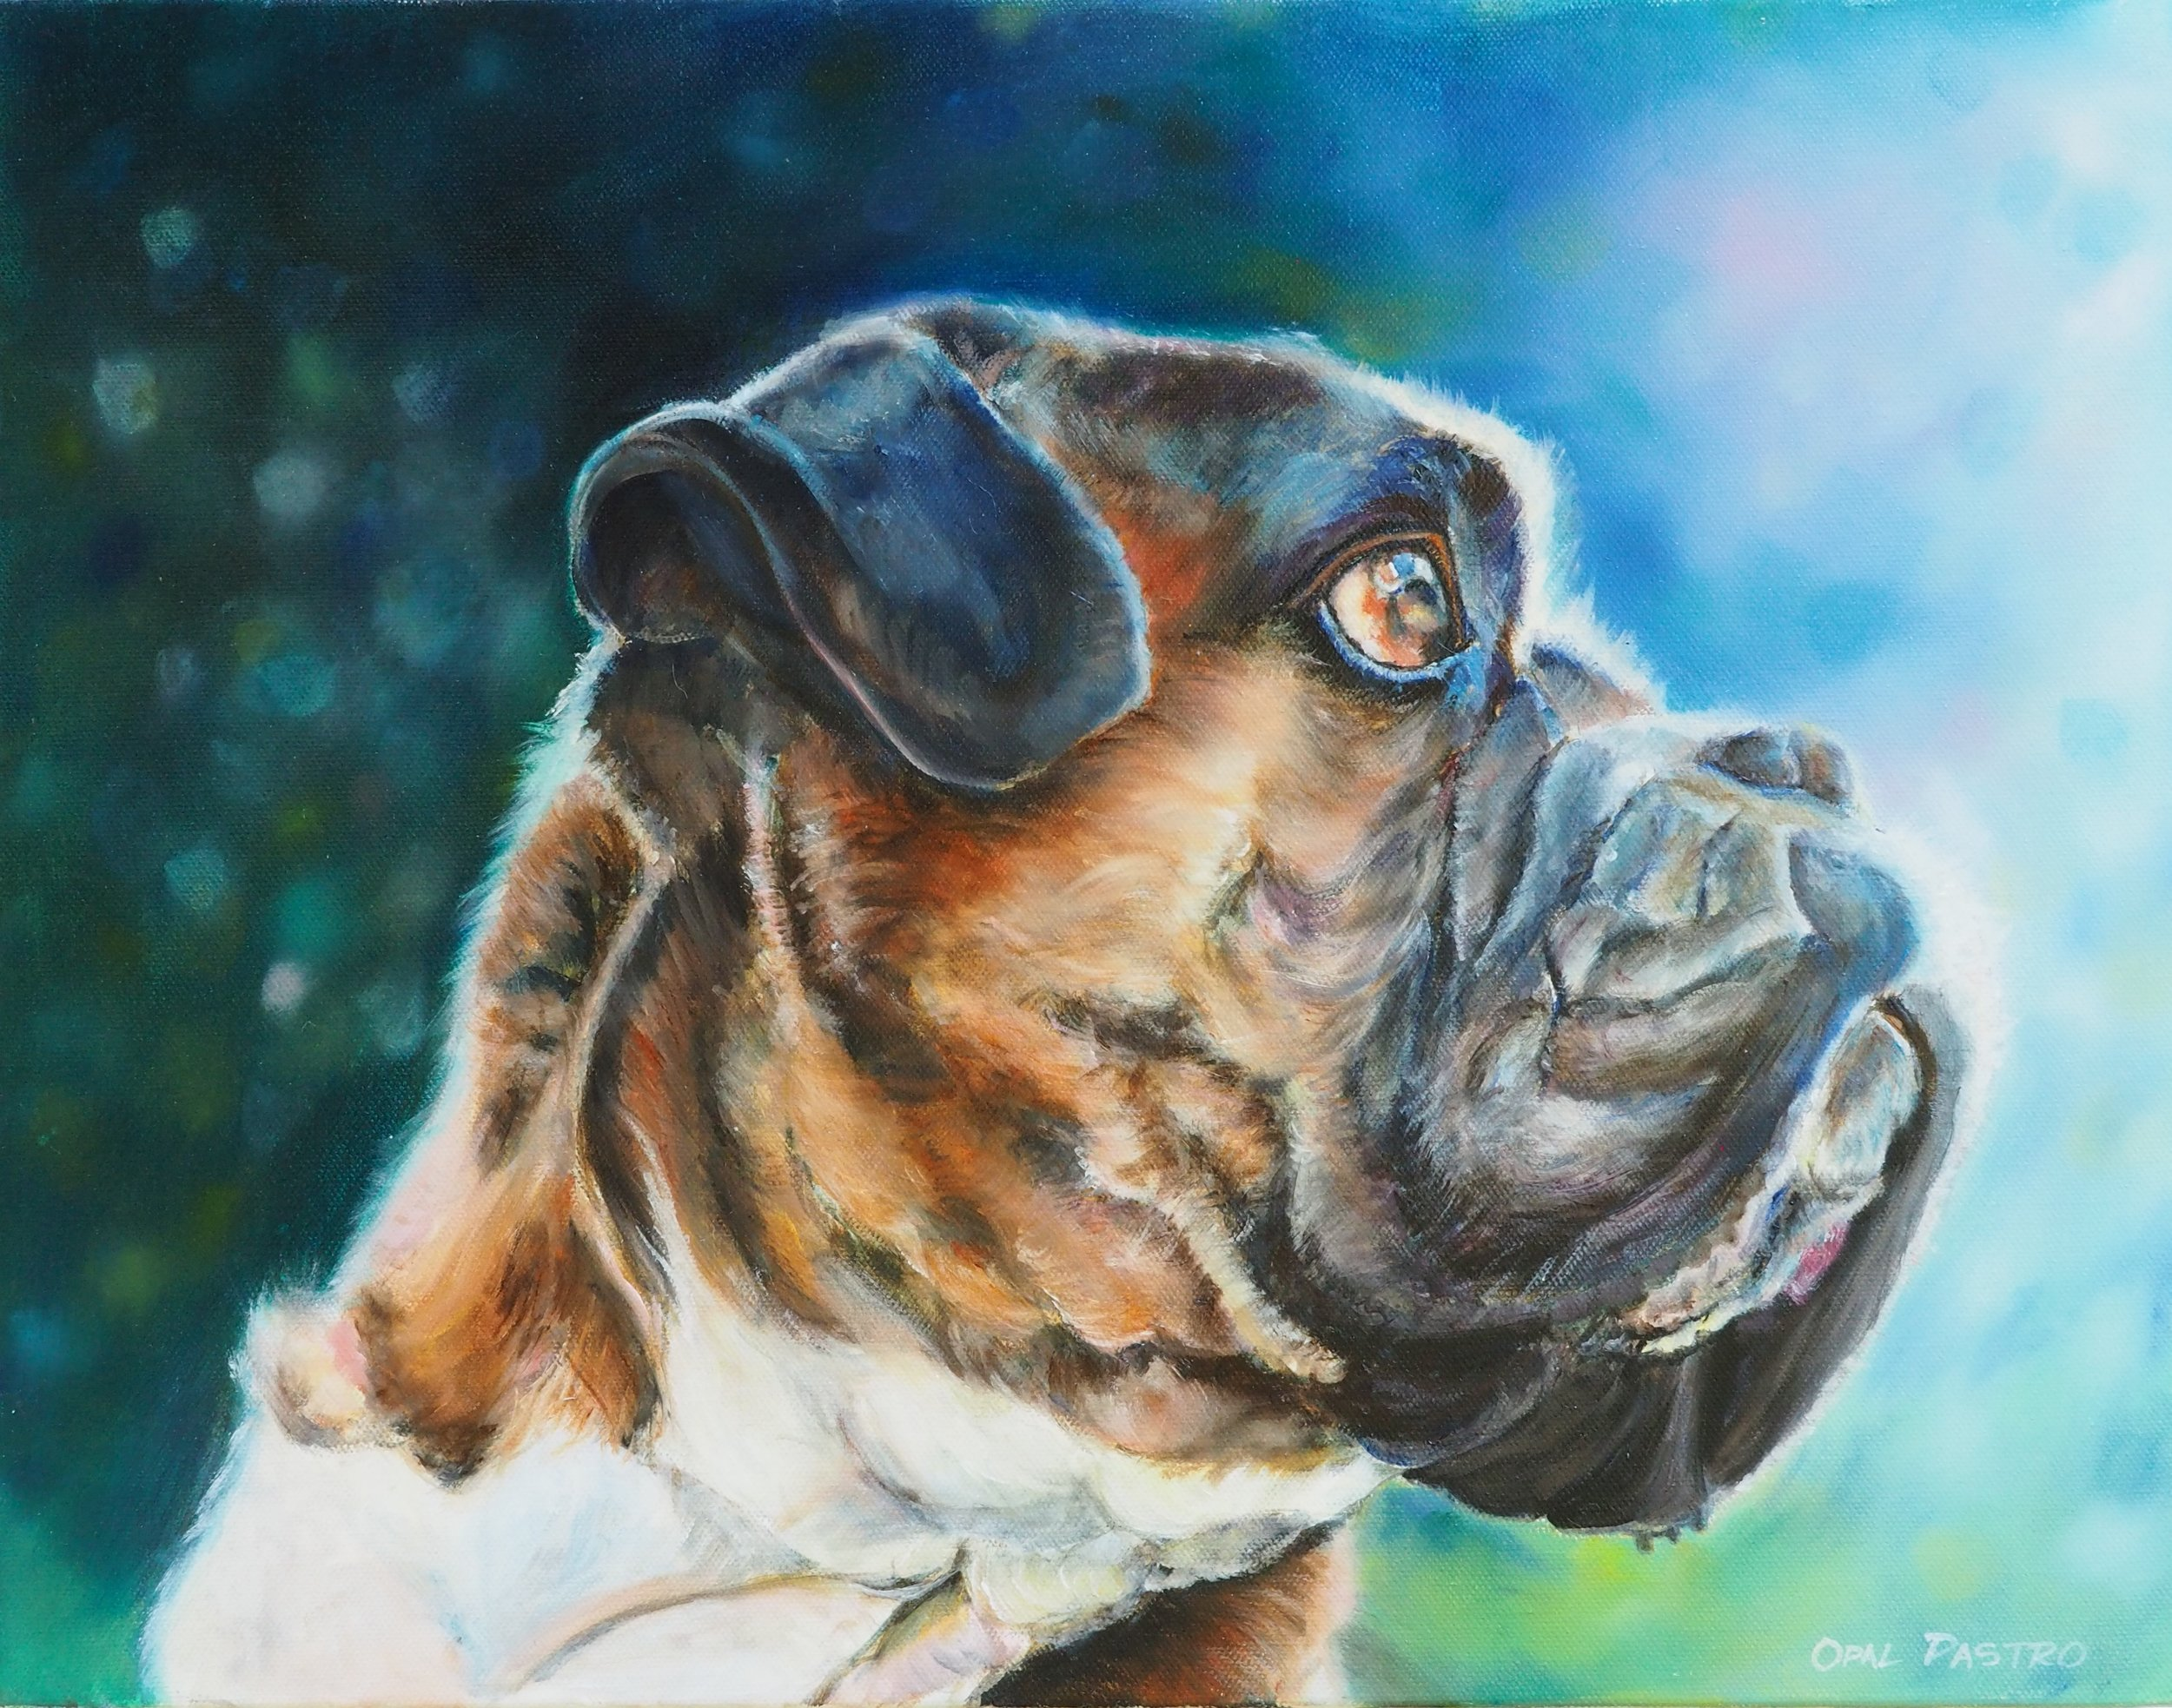 BOXER DOG CUSTOM PAINTING  WITH DAPPLED BACKGROUND BY AUSTRALIAN ARTIST OPAL PASTRO ART